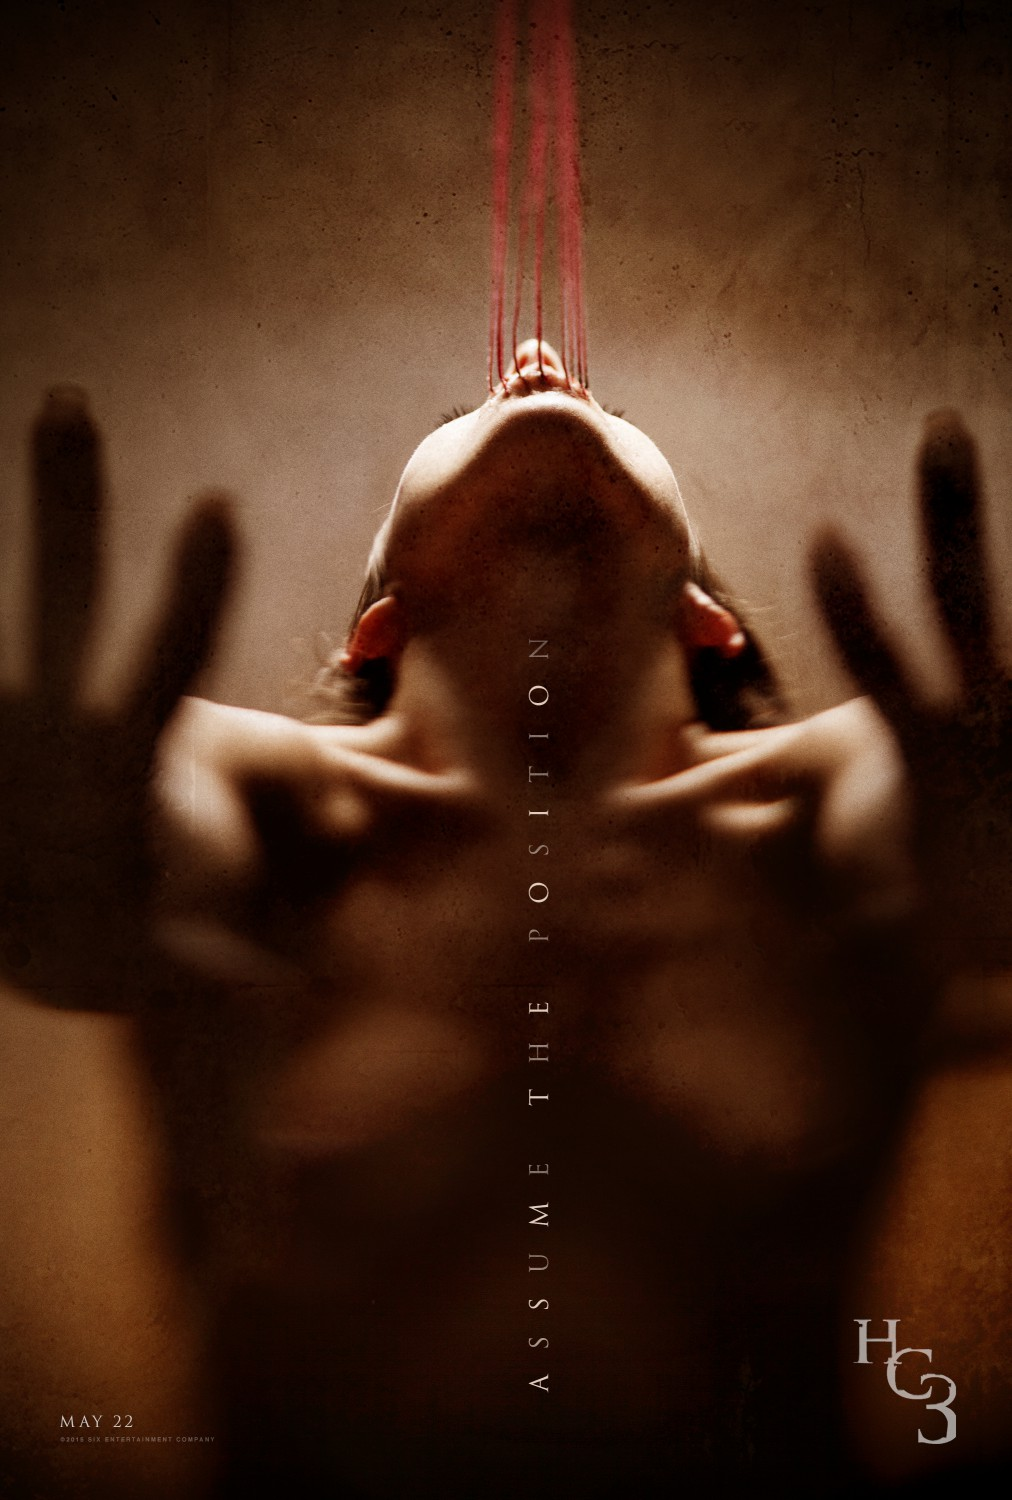 human centipede 3 poster 4 - NSFW - The Human Centipede 3: Final Sequence Gets 4 New Incredible Posters